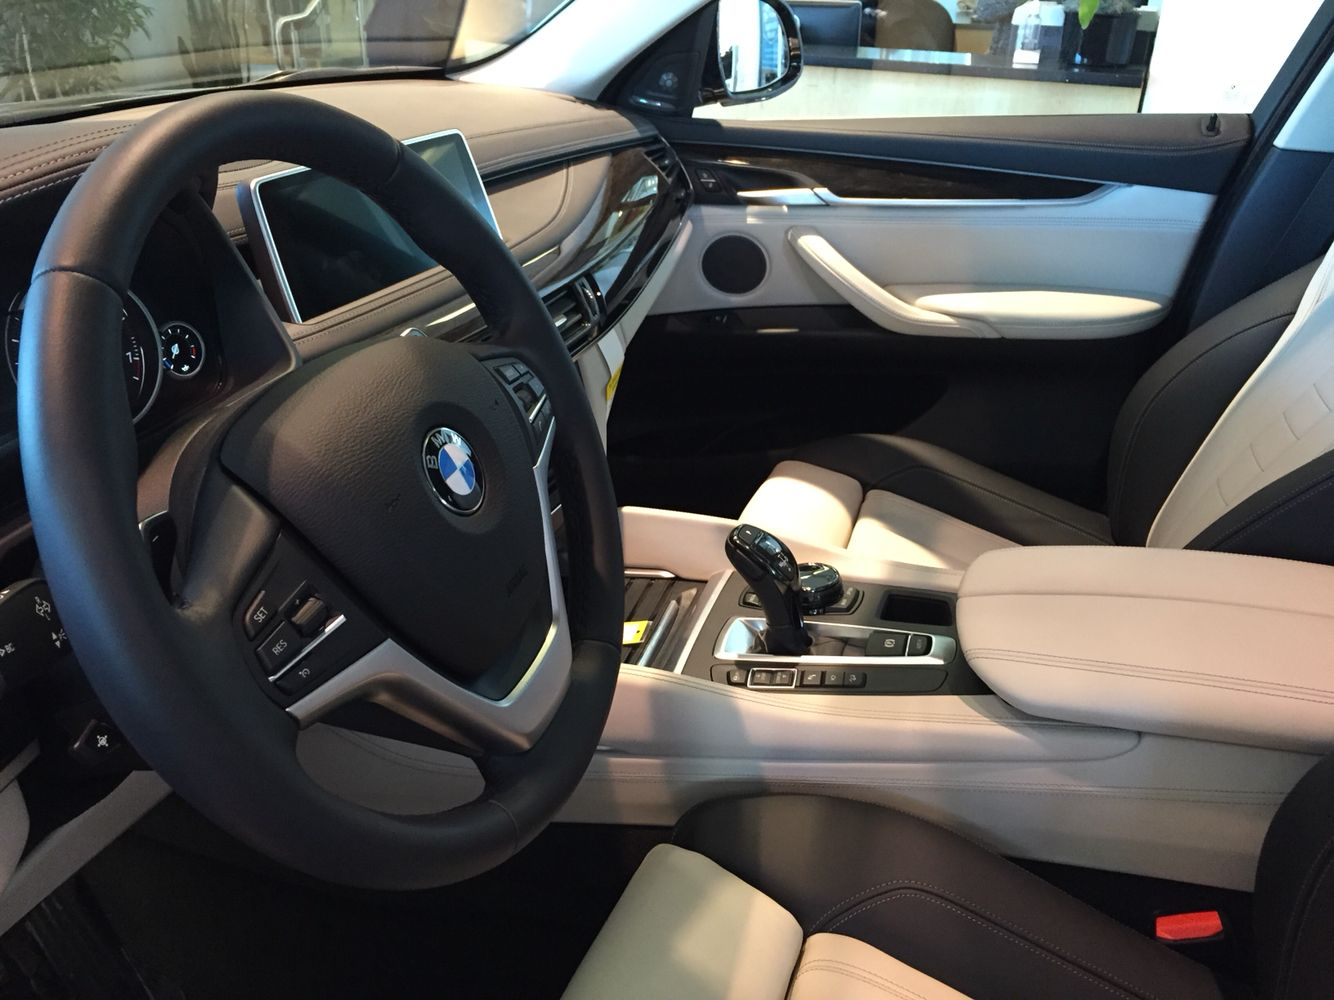 Bmw X6 Black And White Interior Cars Pinterest Bmw X6 Black